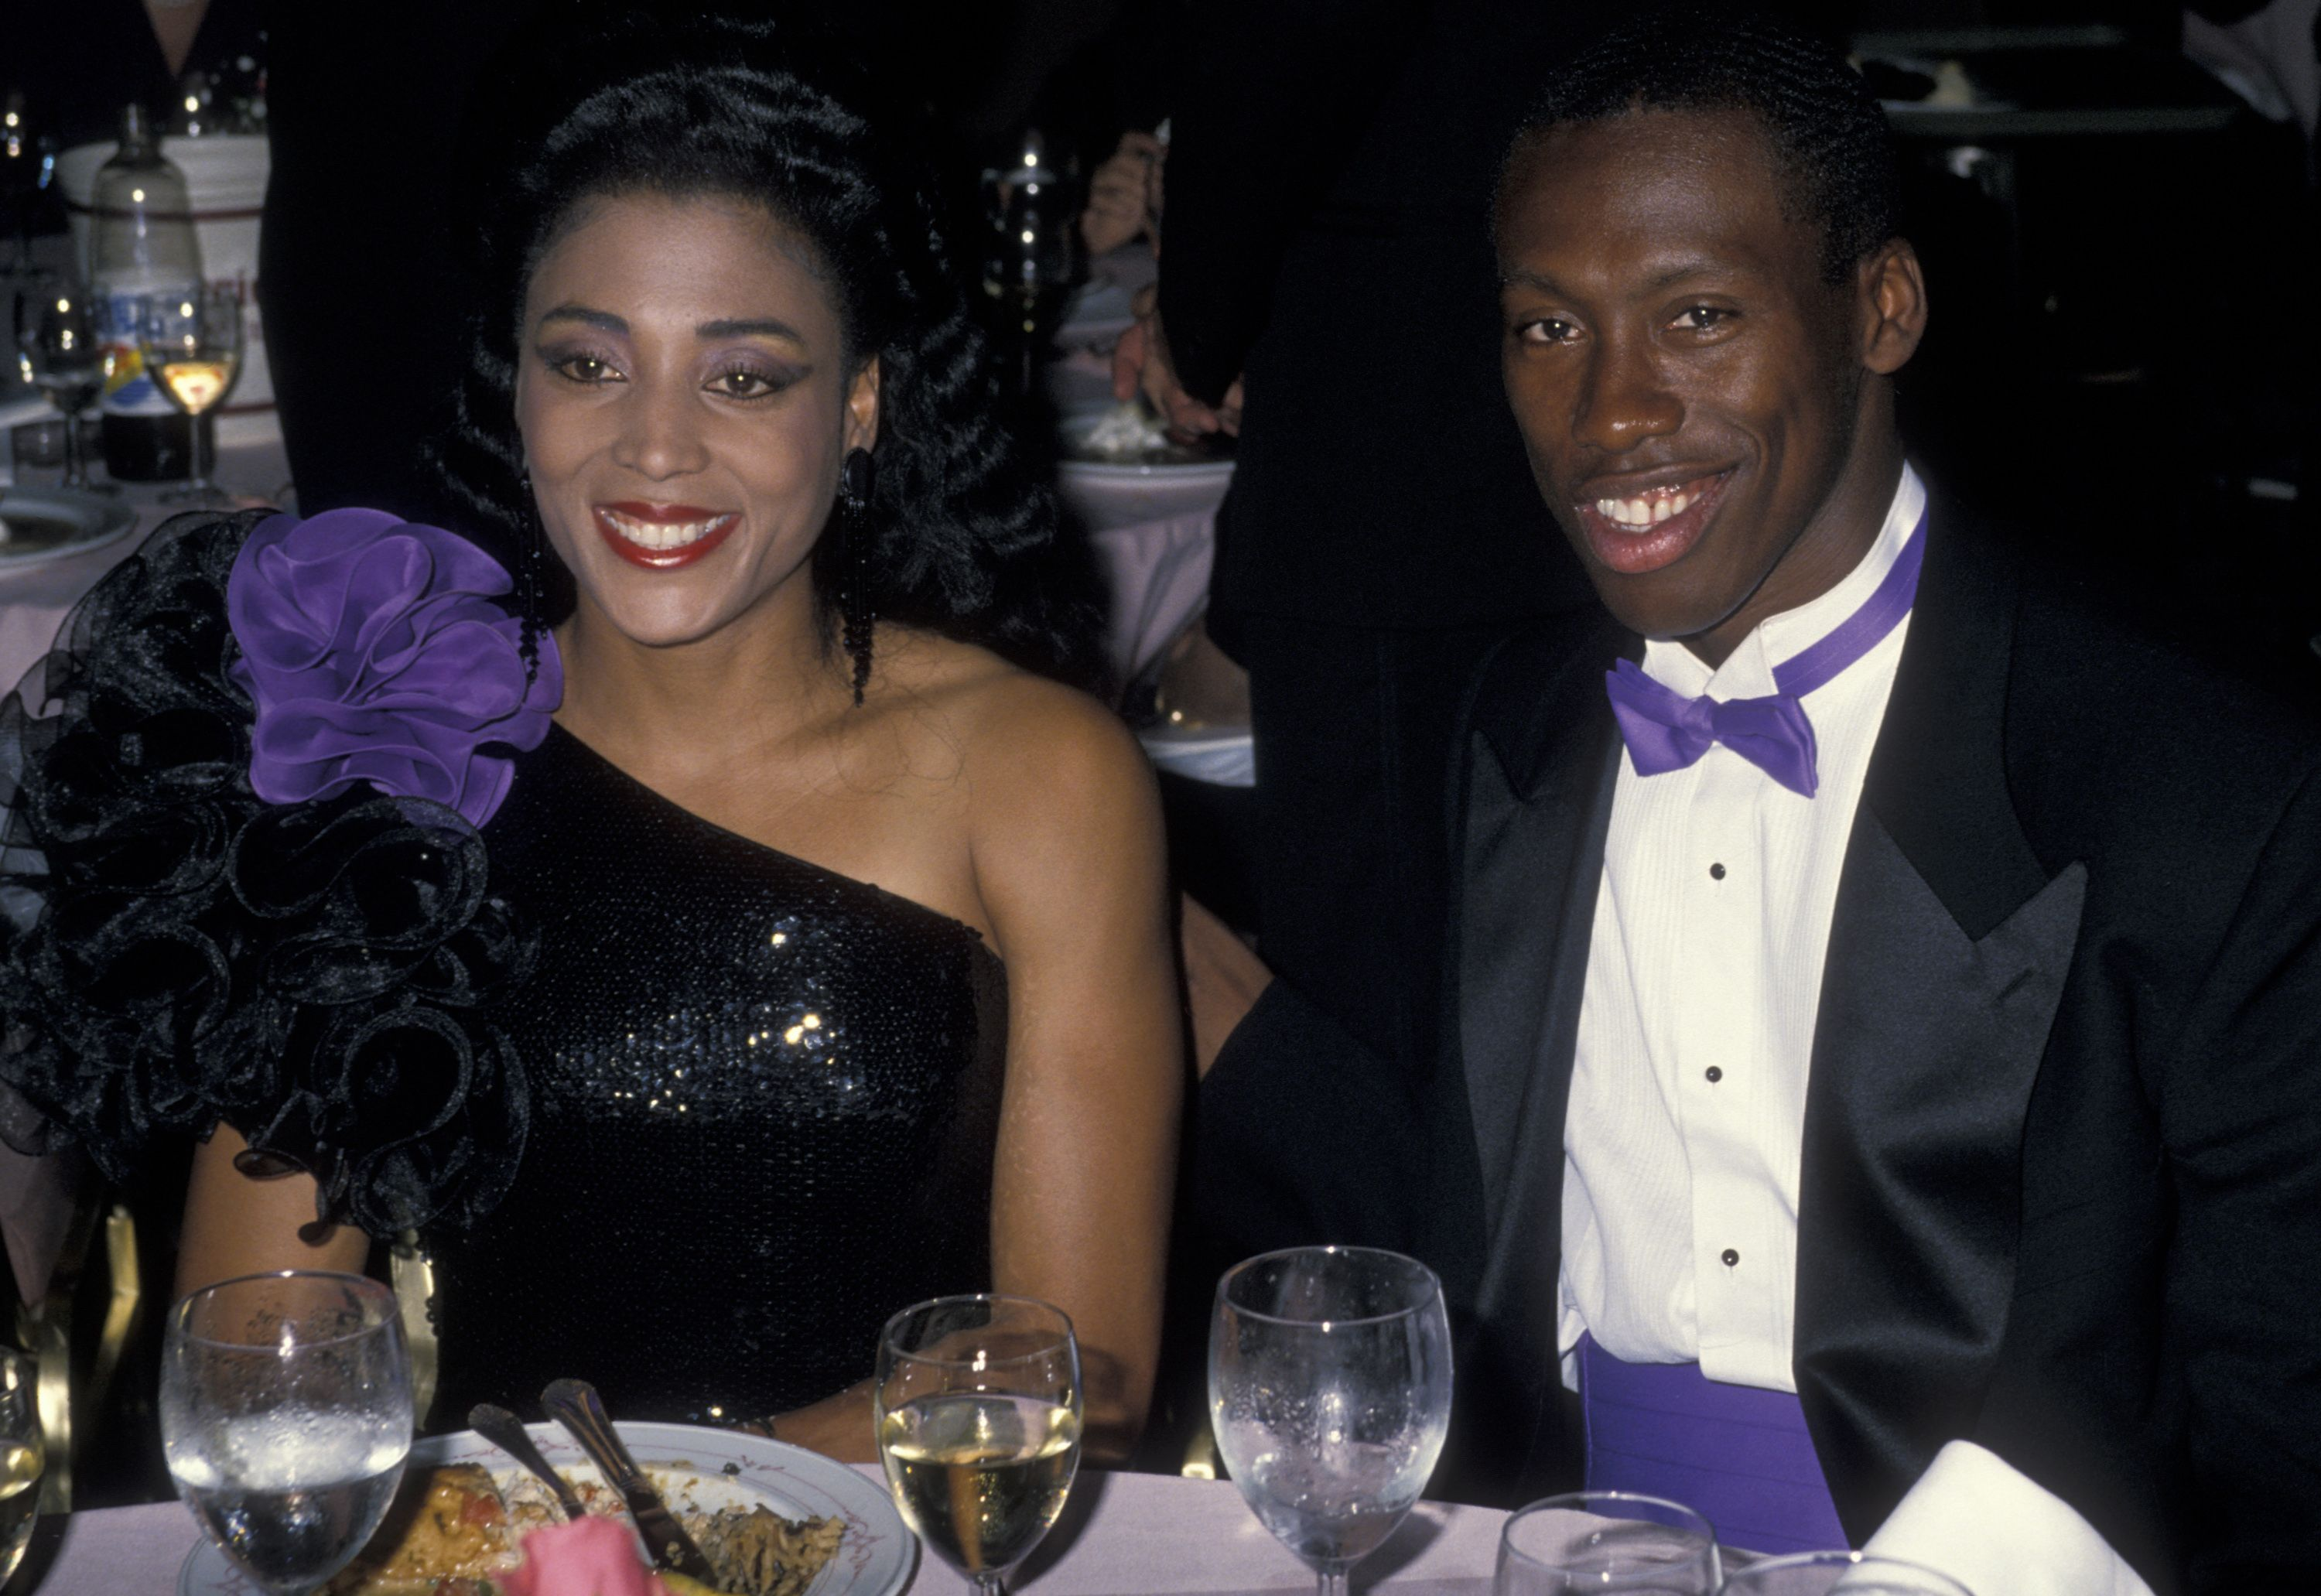 Athletes Florence Griffith-Joyner and Al Joyner at the Annual Woman's Sports Foundation Awards on October 17, 1988 in New York City.    Photo: Getty Images